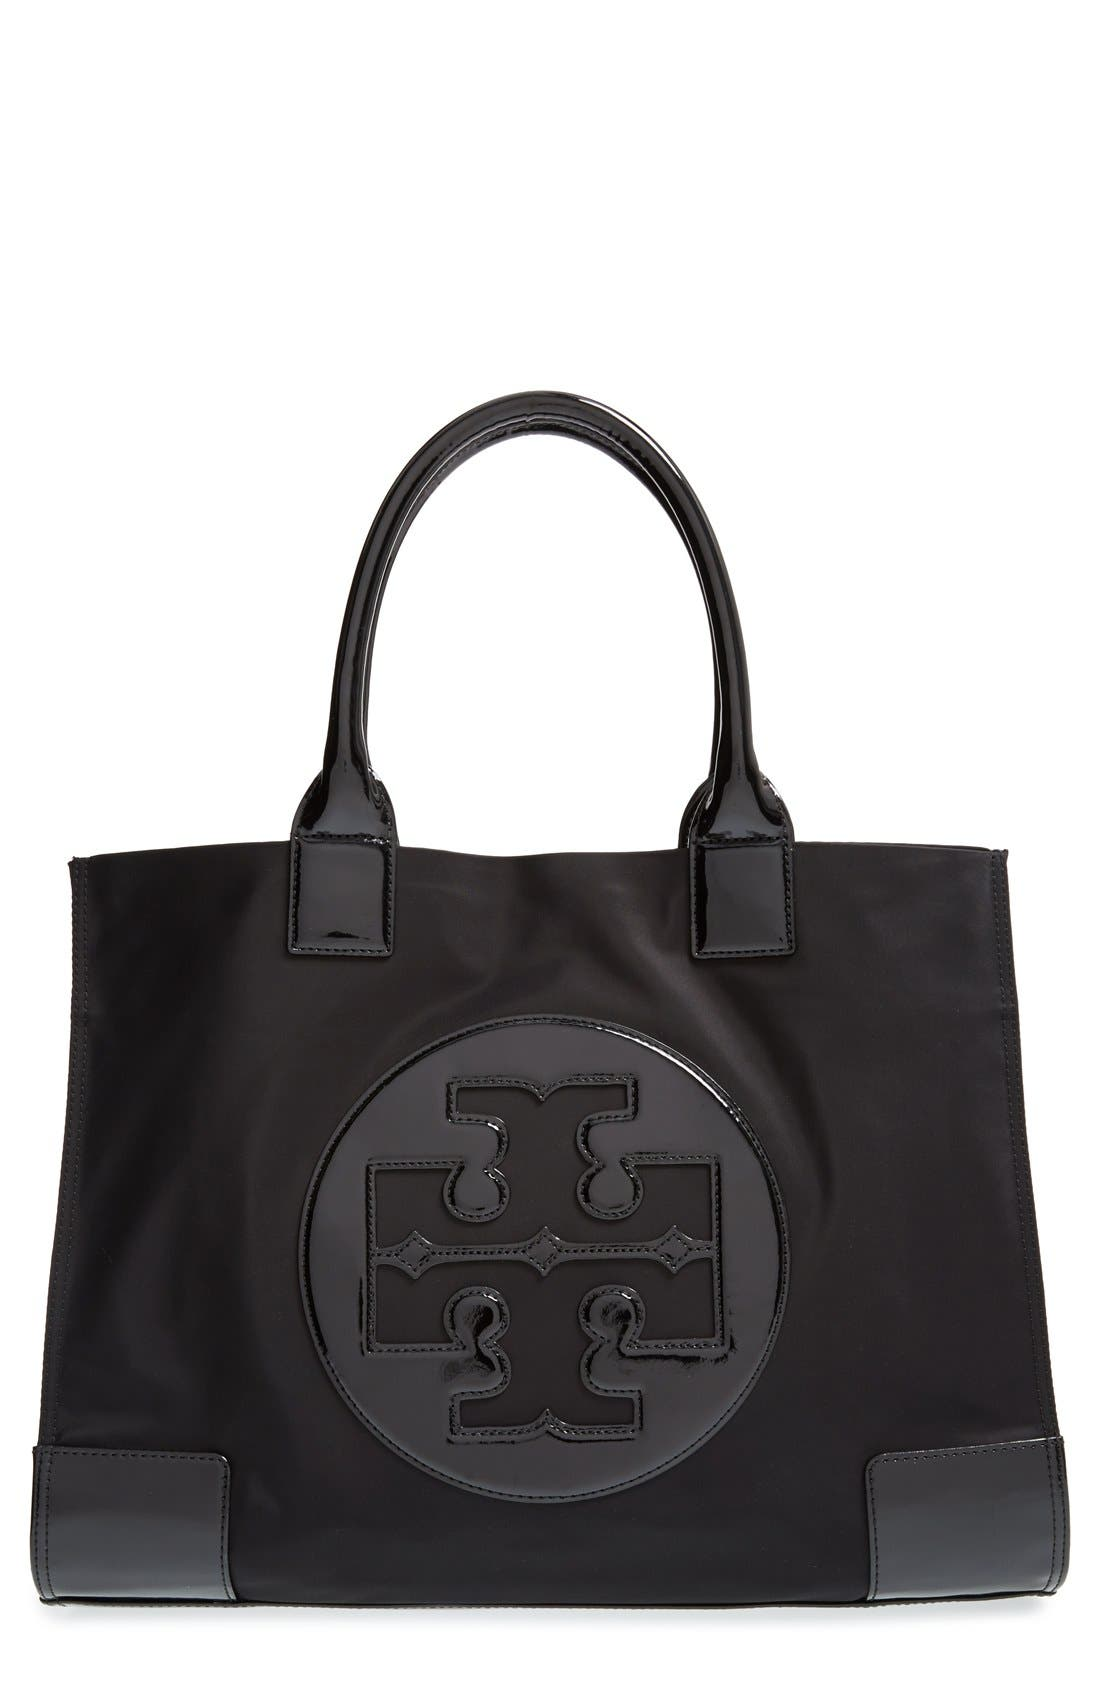 TORY BURCH, 'Ella' Nylon Tote, Main thumbnail 1, color, 001